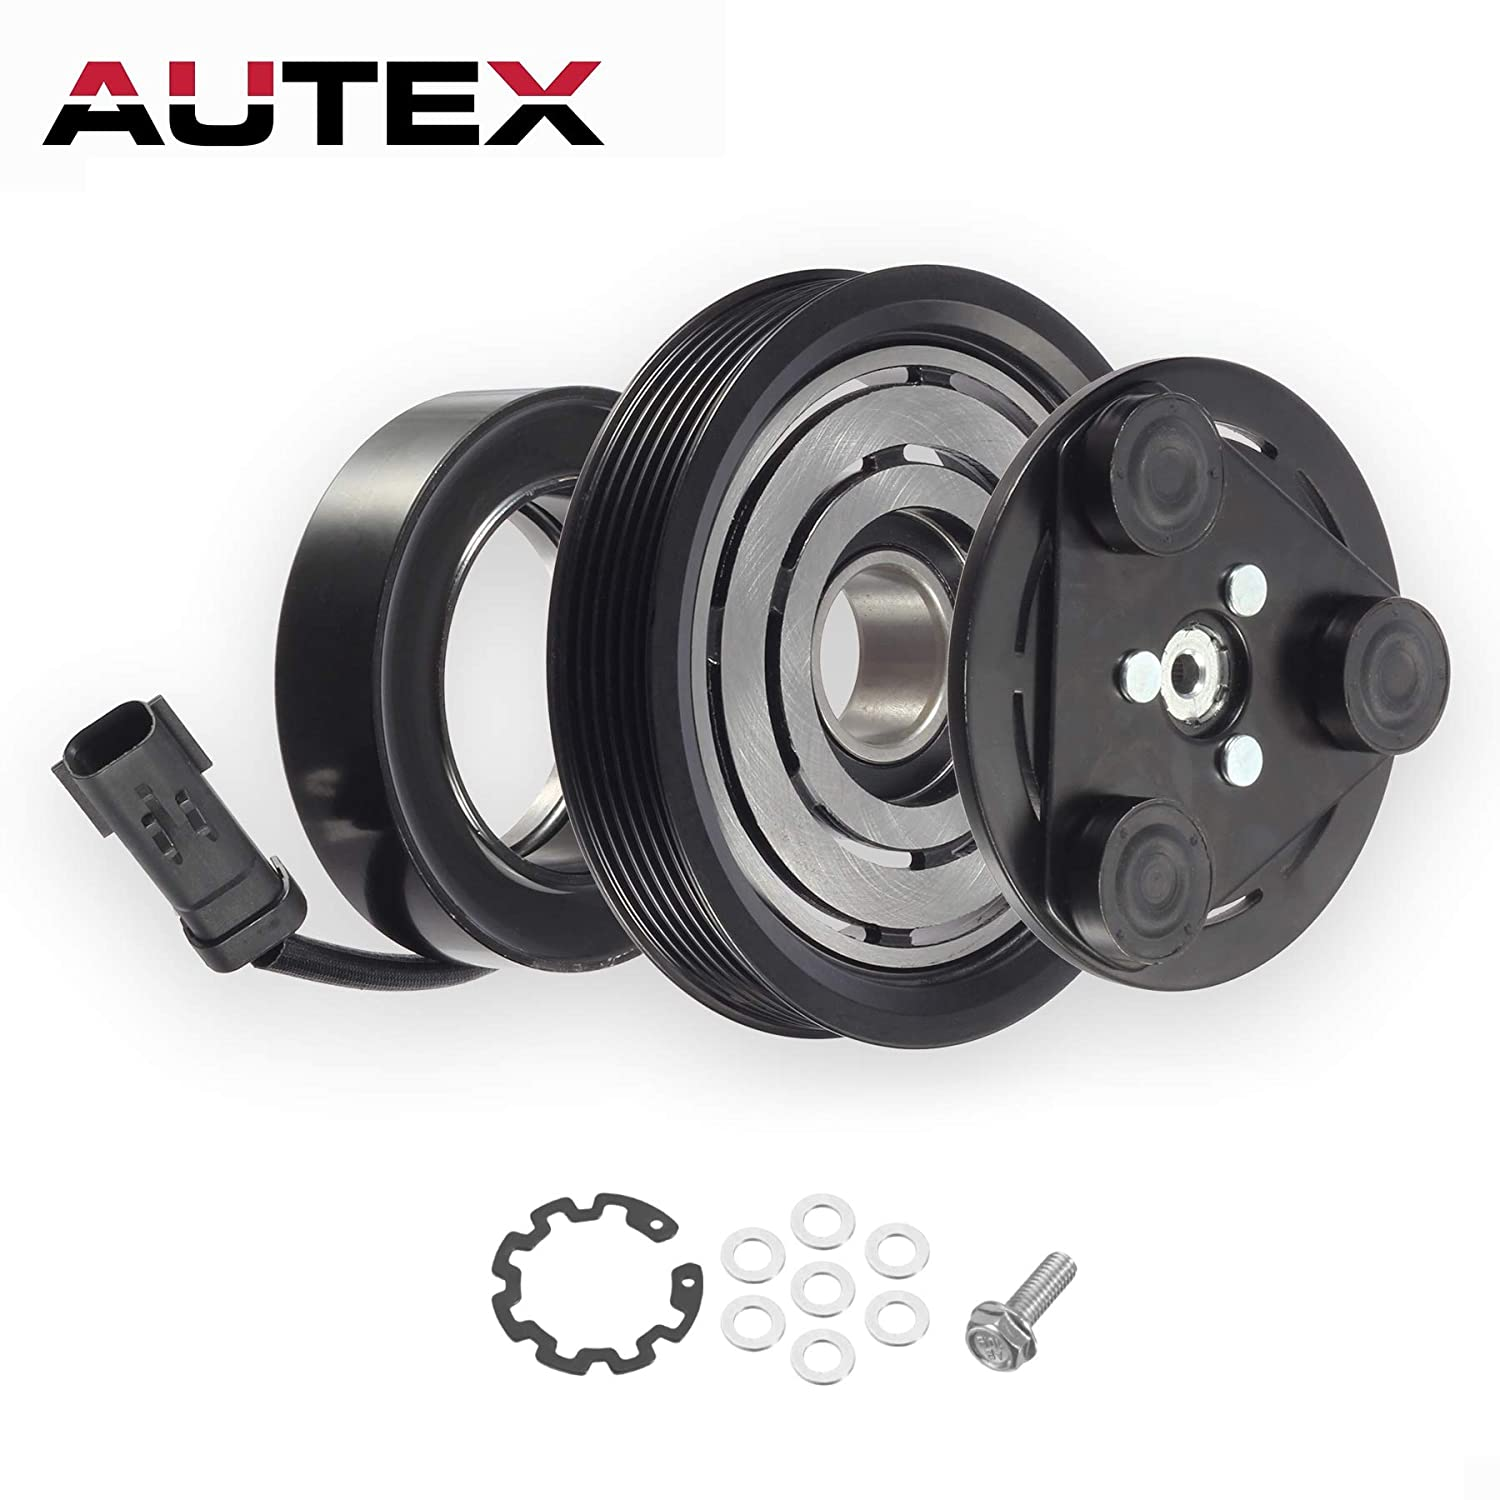 AUTEX AC A/C Compressor Clutch Coil Assembly Kit 55111400AA TEM255275 67184 55111400AB Replacement for 2006 2007 2008 JEEP LIBERTY 2007 2008 DODGE NITRO